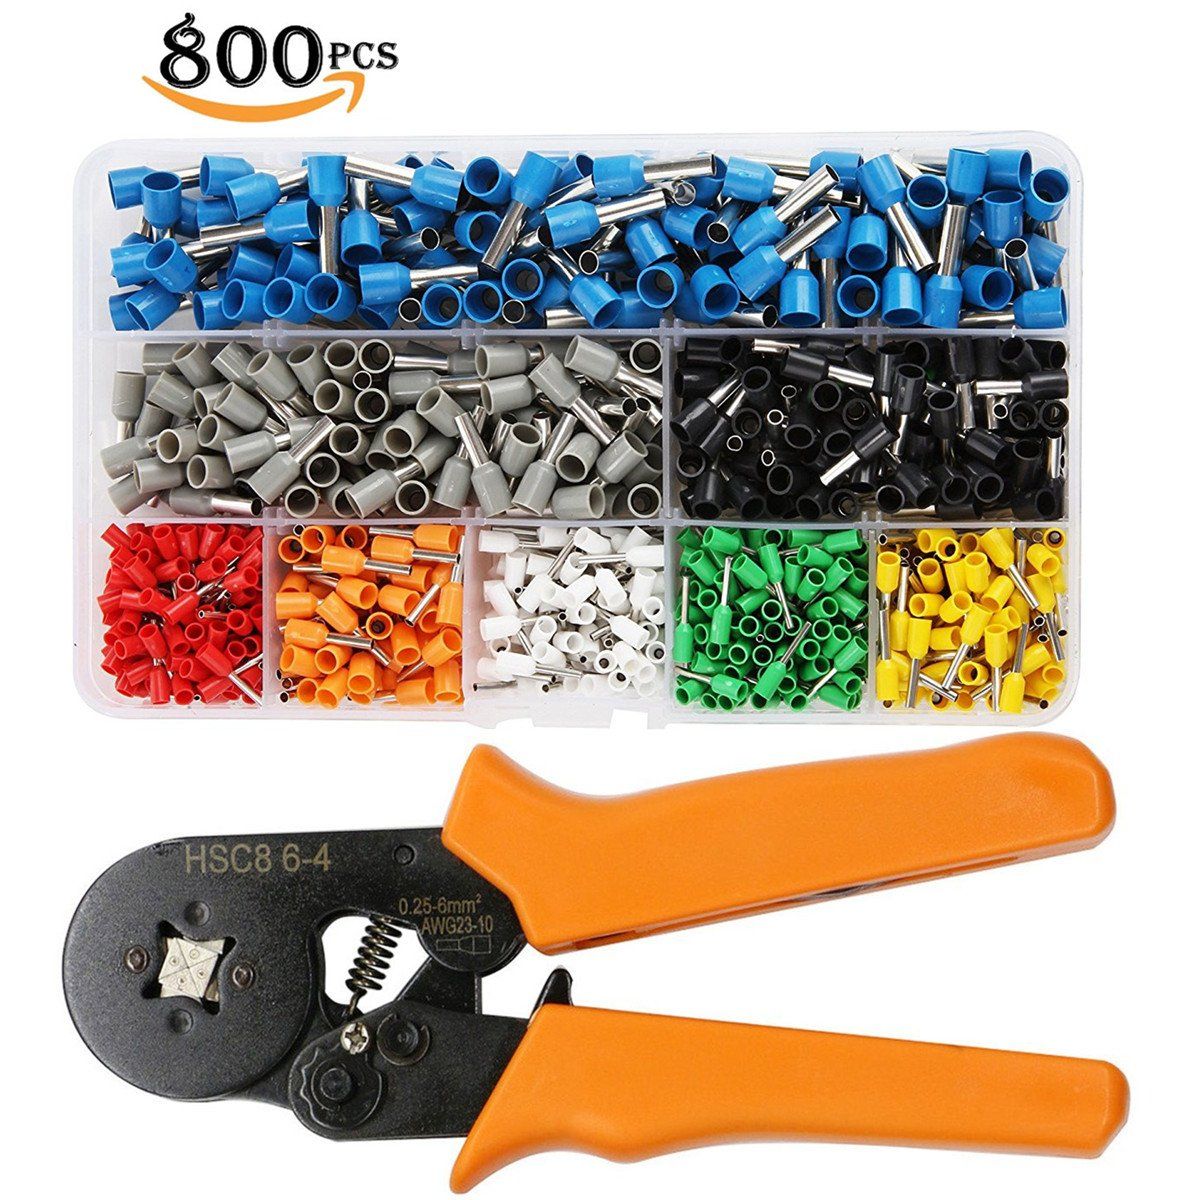 Ferrule Plier Tools With 800pcs Terminals AWG Wire Crimpers Crimping Tool Kit